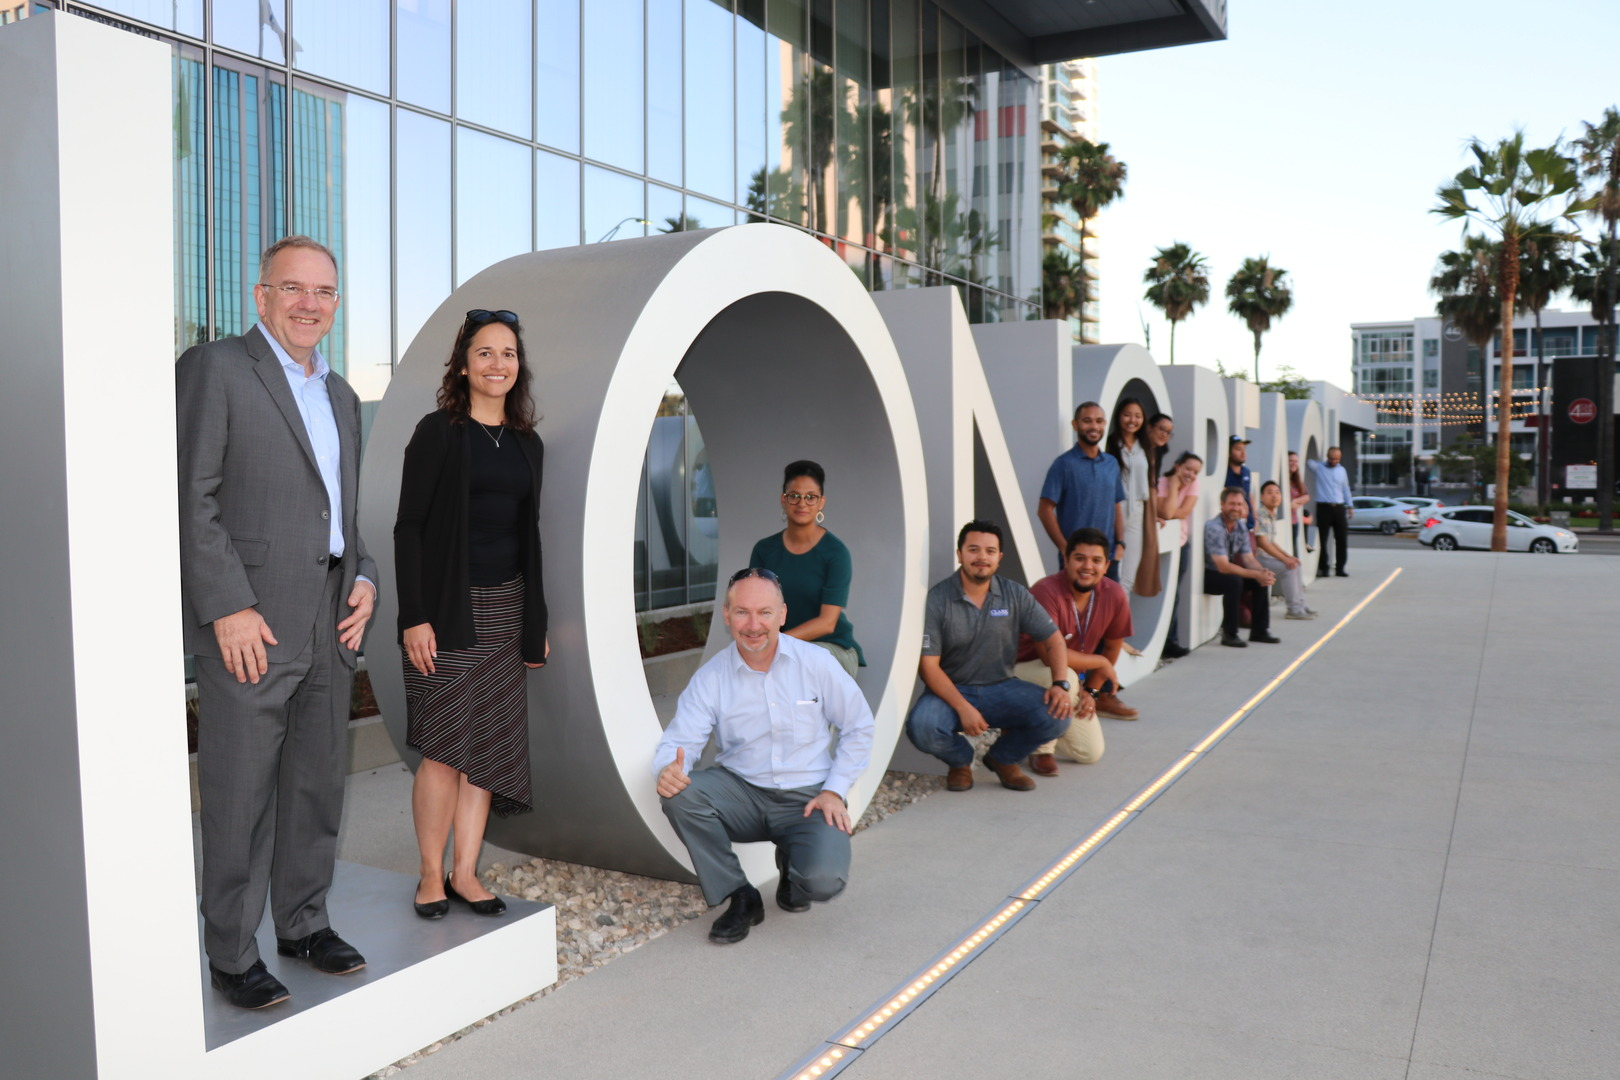 On July 29th, the Plenary-Edgemoor Civic Partners team celebrated the completion of the Long Beach Civic Center with a grand opening to cut the ribbon and unveil the new buildings to the public.